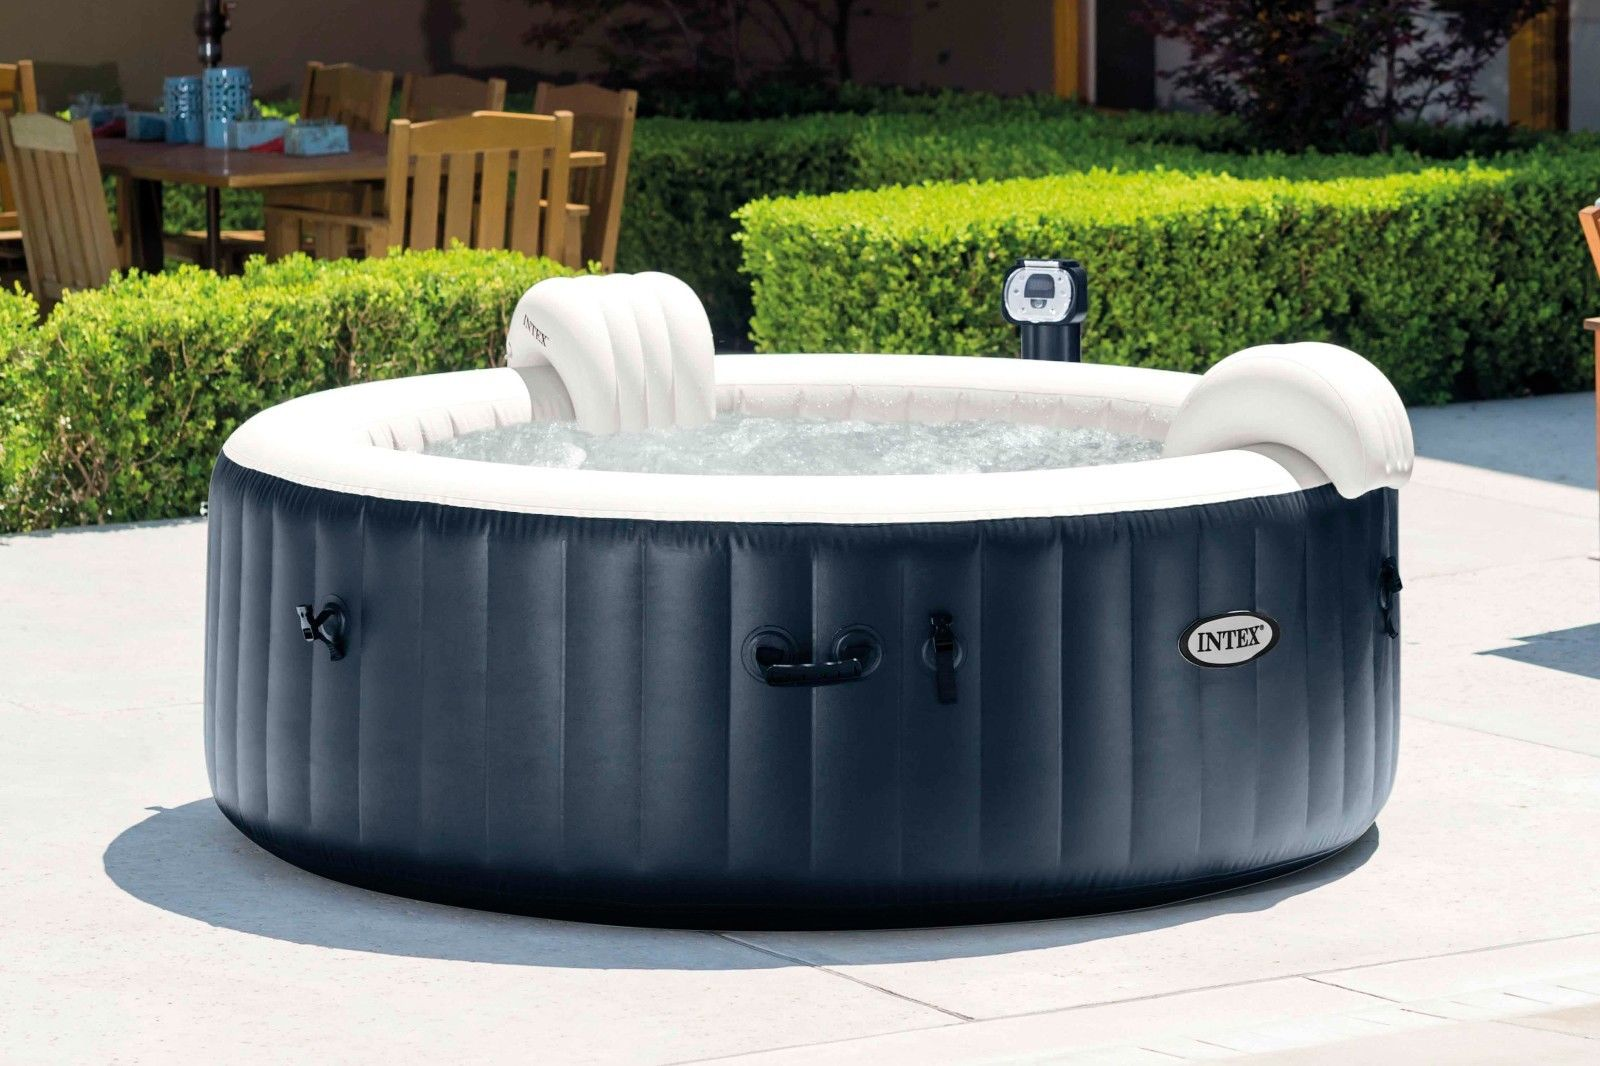 Intex Pure Spa 4 Person Inflatable Portable Heated Bubble Hot Tub Model E